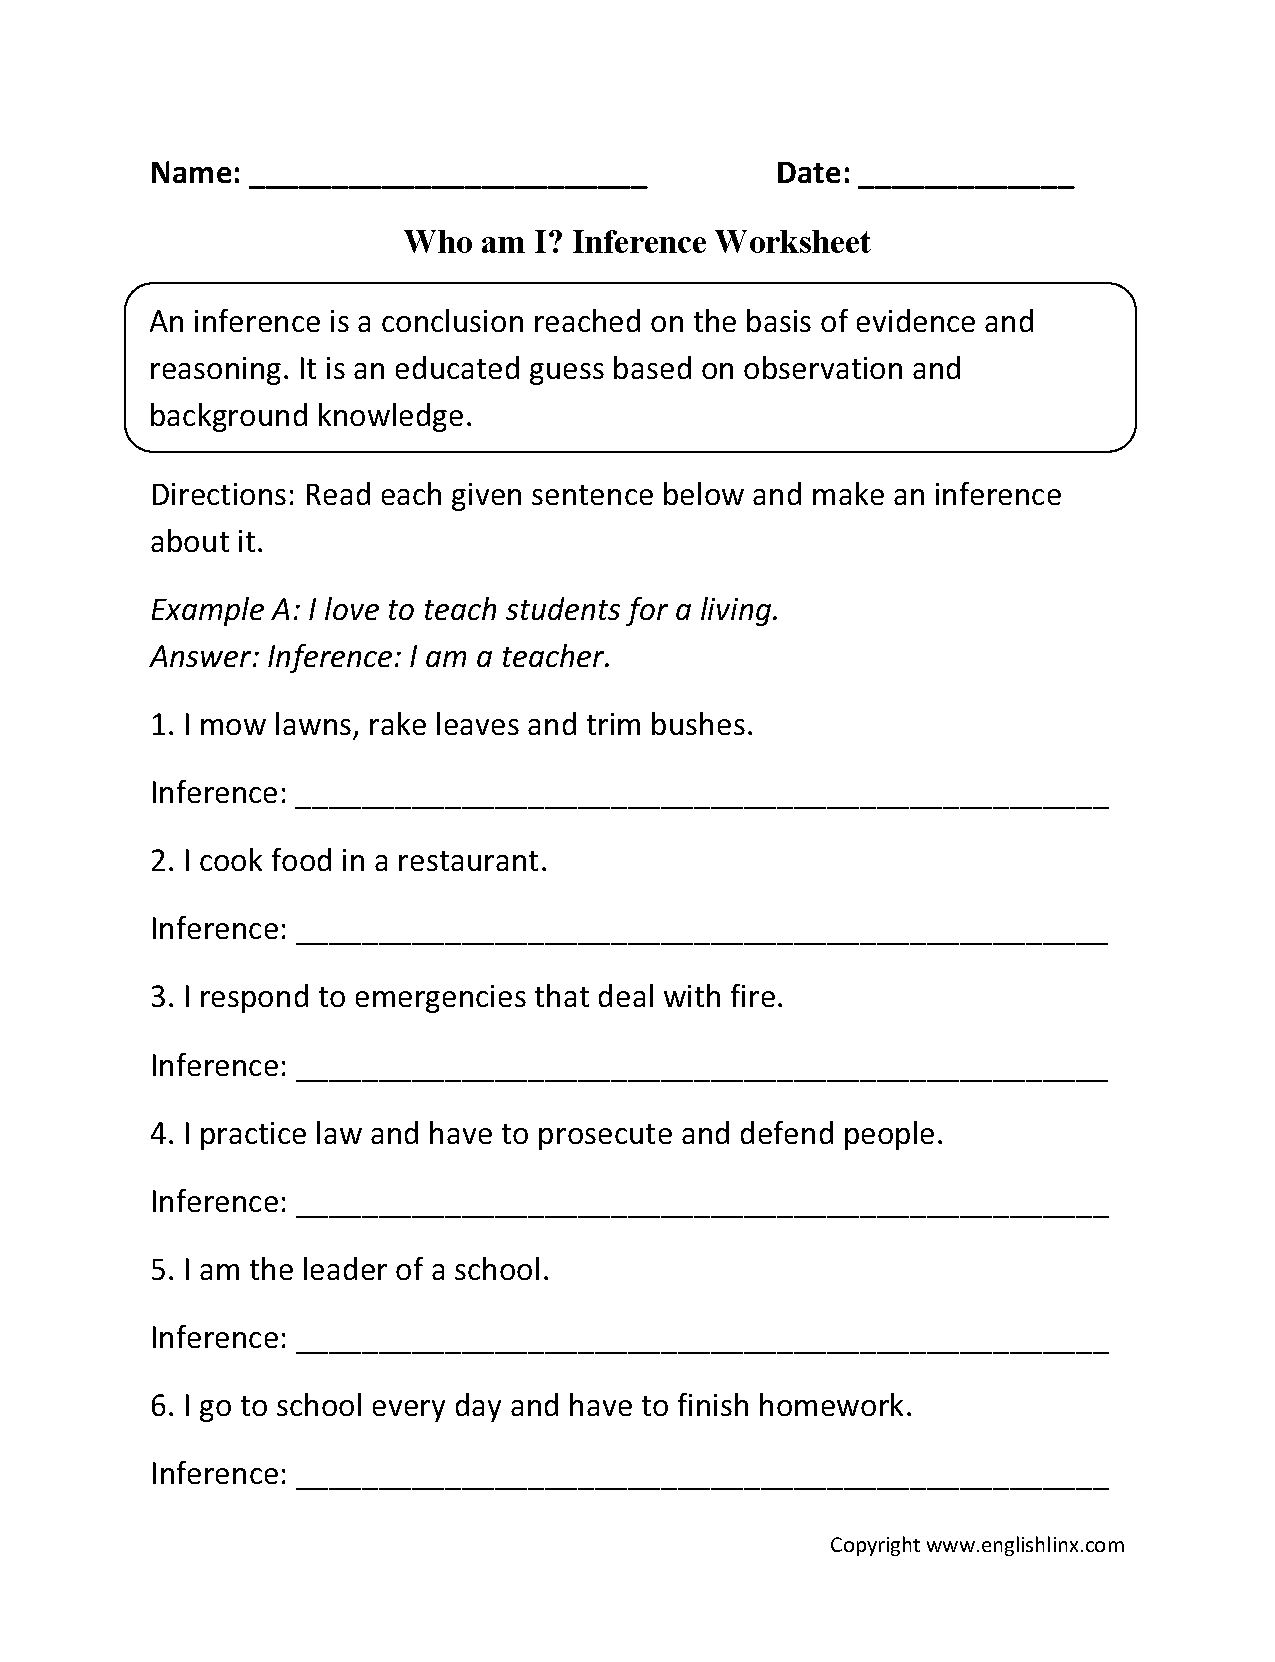 Worksheets Drawing Conclusions Worksheet who am i inference worksheets englishlinx com board pinterest reading worksheets